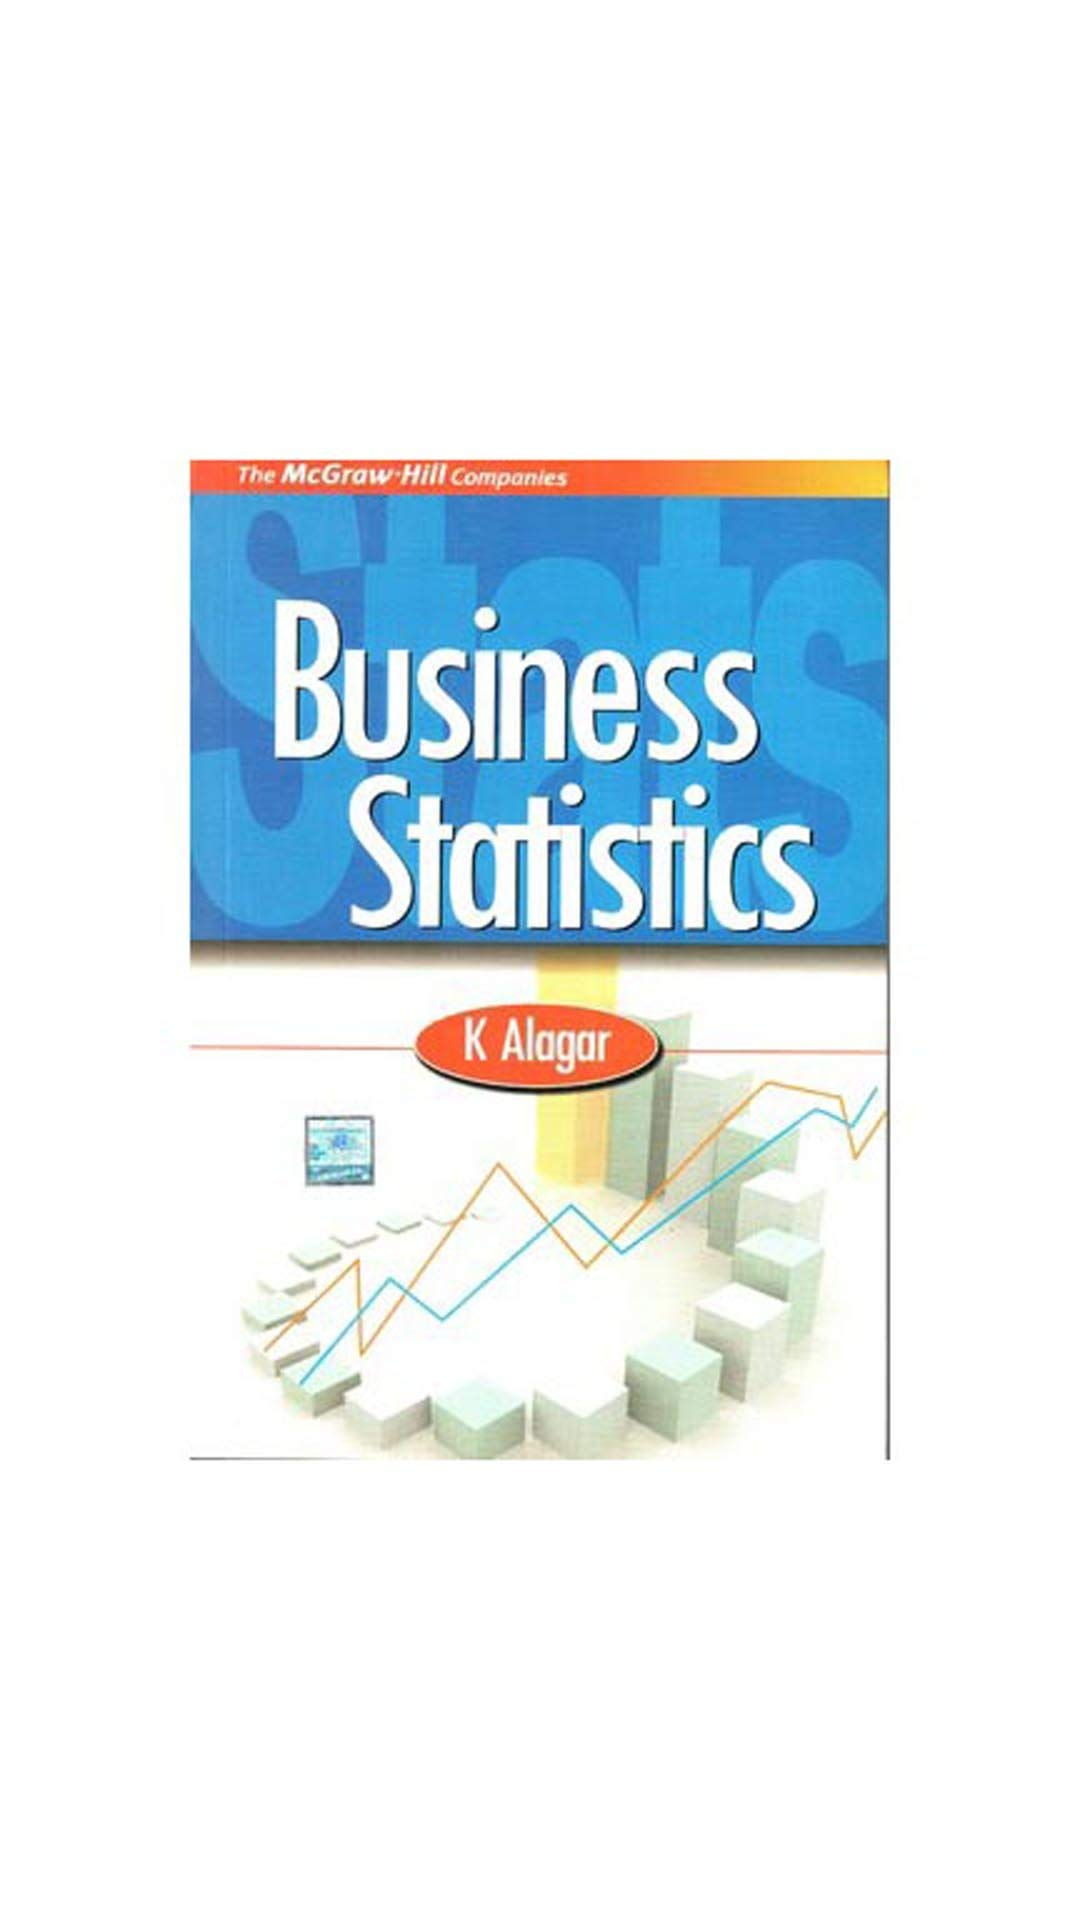 Business Statistics Paperback – 1 July 2017